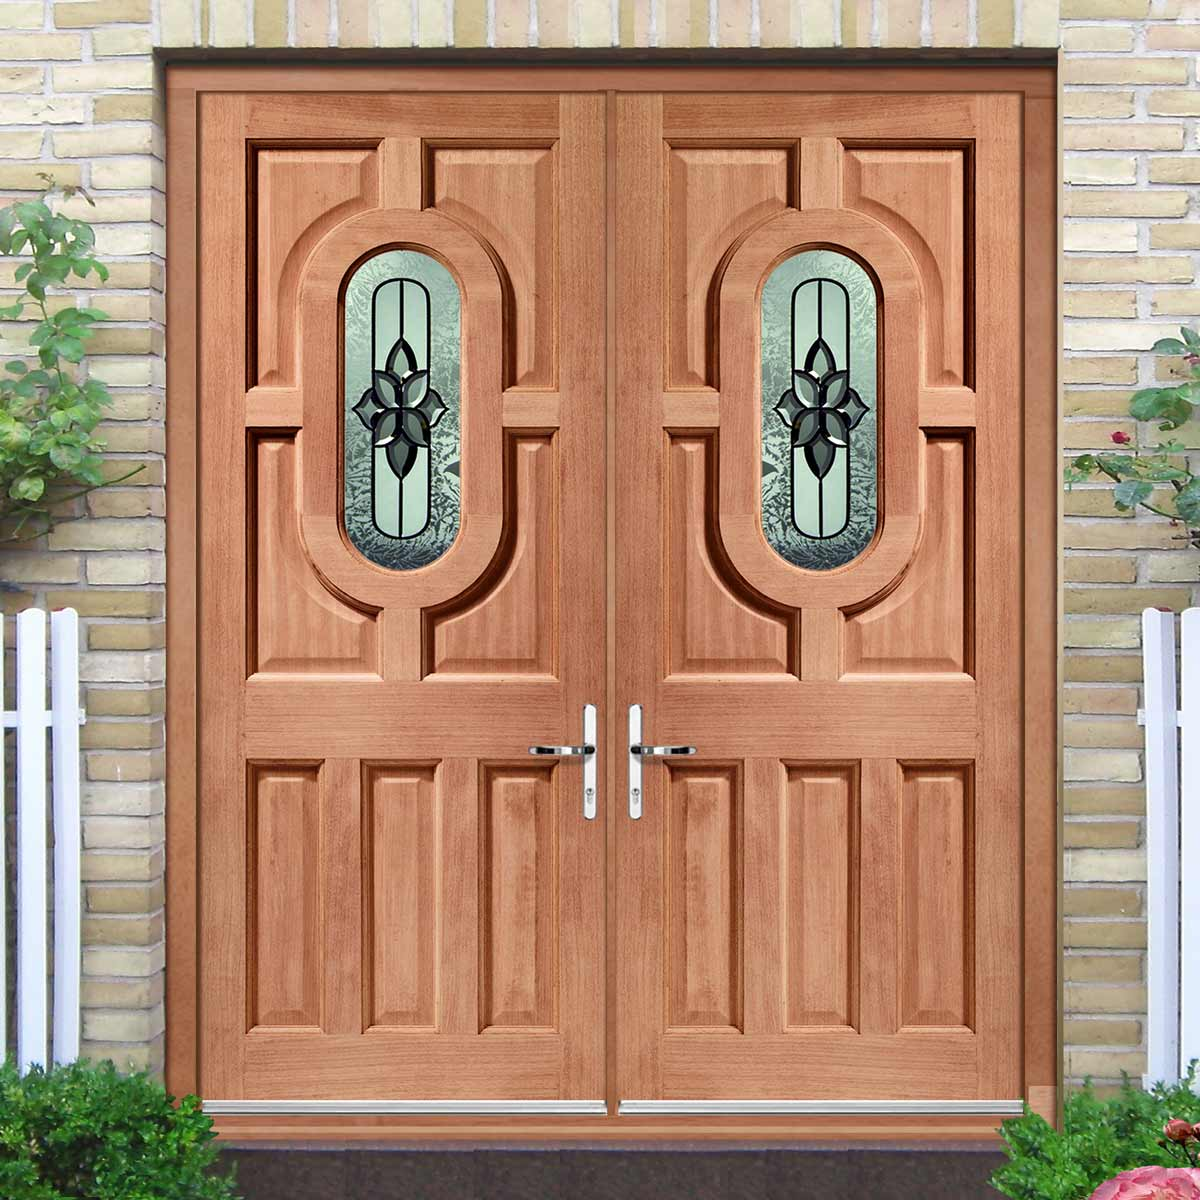 Acacia External Mahogany Dowelled Double Door and Frame Set - Chesterton Style Double Glazing